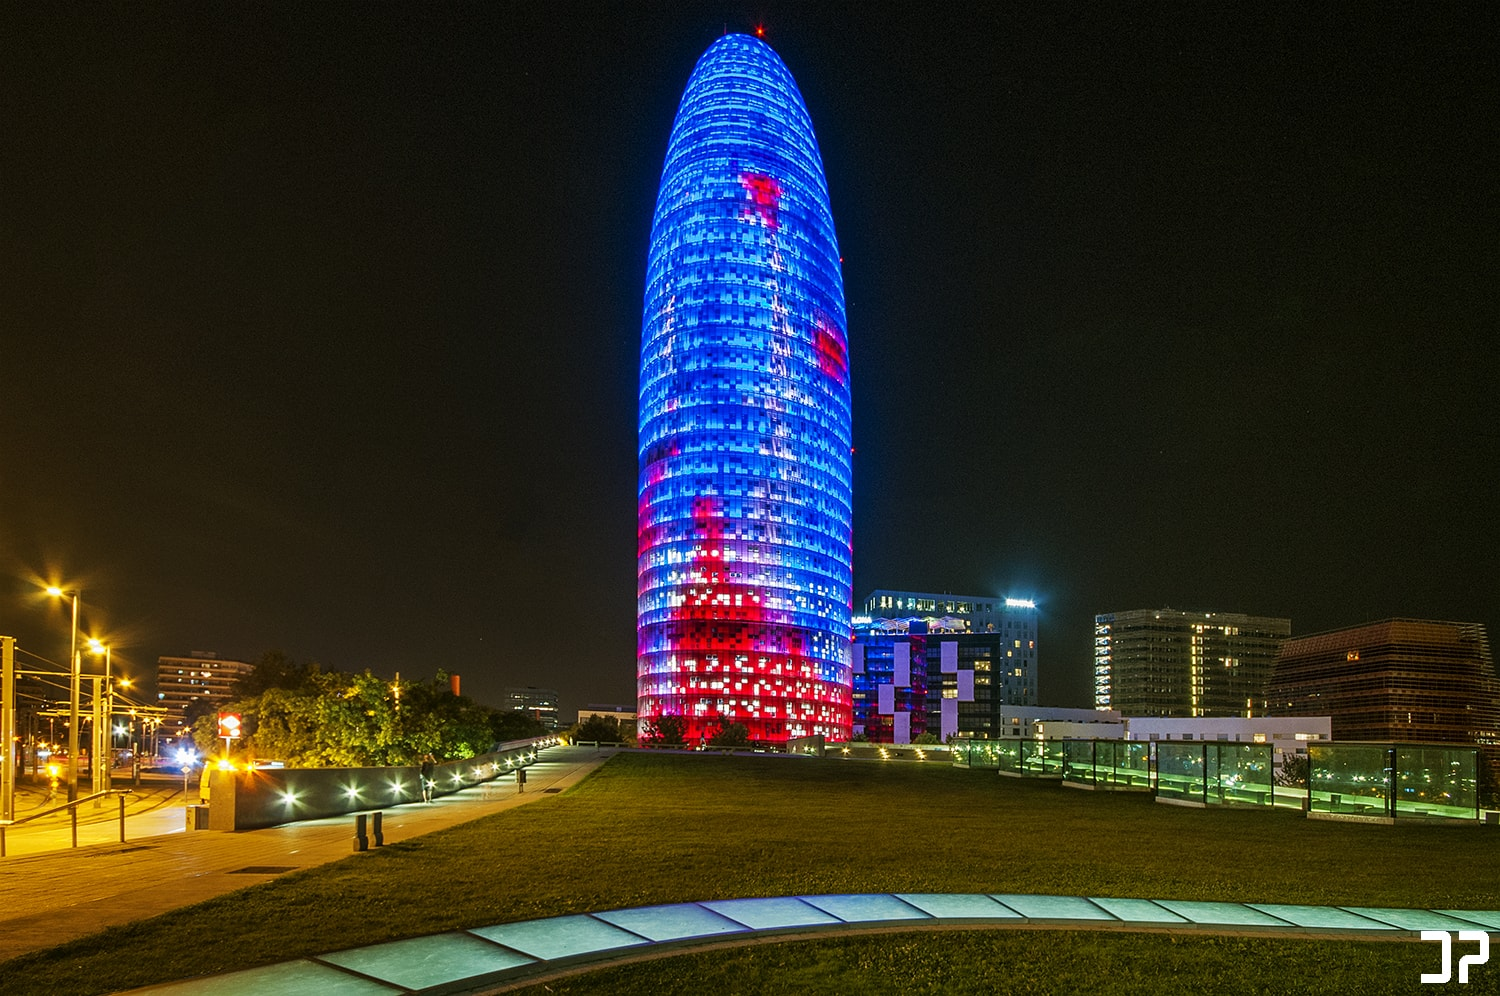 Barcelona - Torre Glòries at night